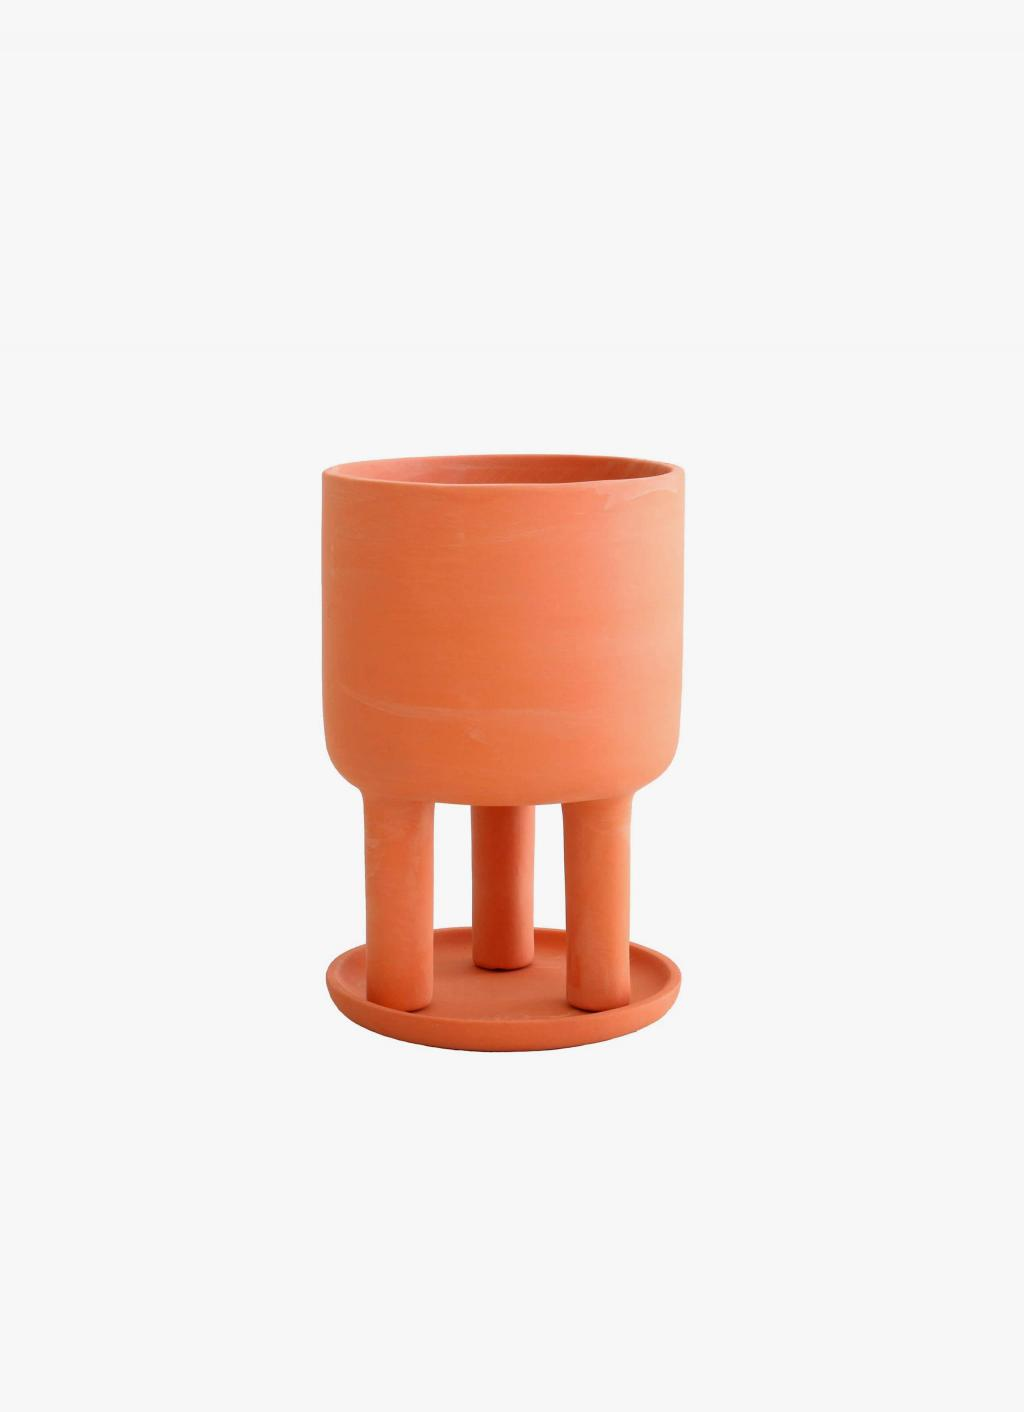 Studio Arhoj - Tri-Pot - Small